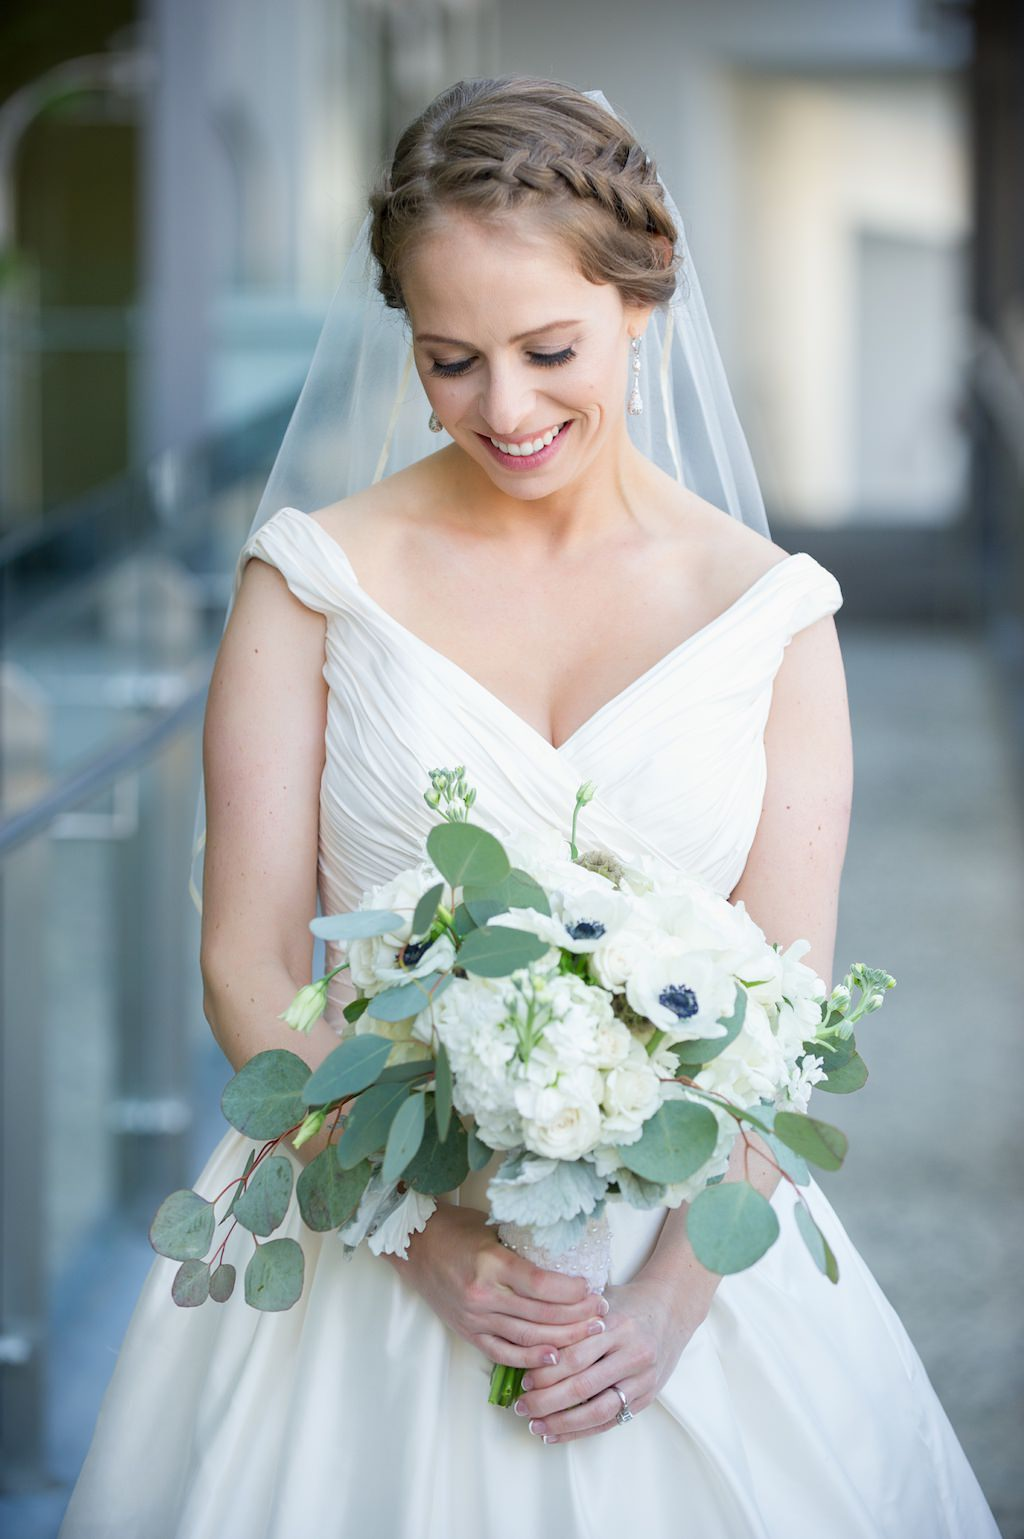 Bride in Classic Makeup with Braid Updo | Clearwater Beach Wedding Photographer Andi Diamond Photography | Hair and Makeup Artist Femme Akoi Beauty Studio